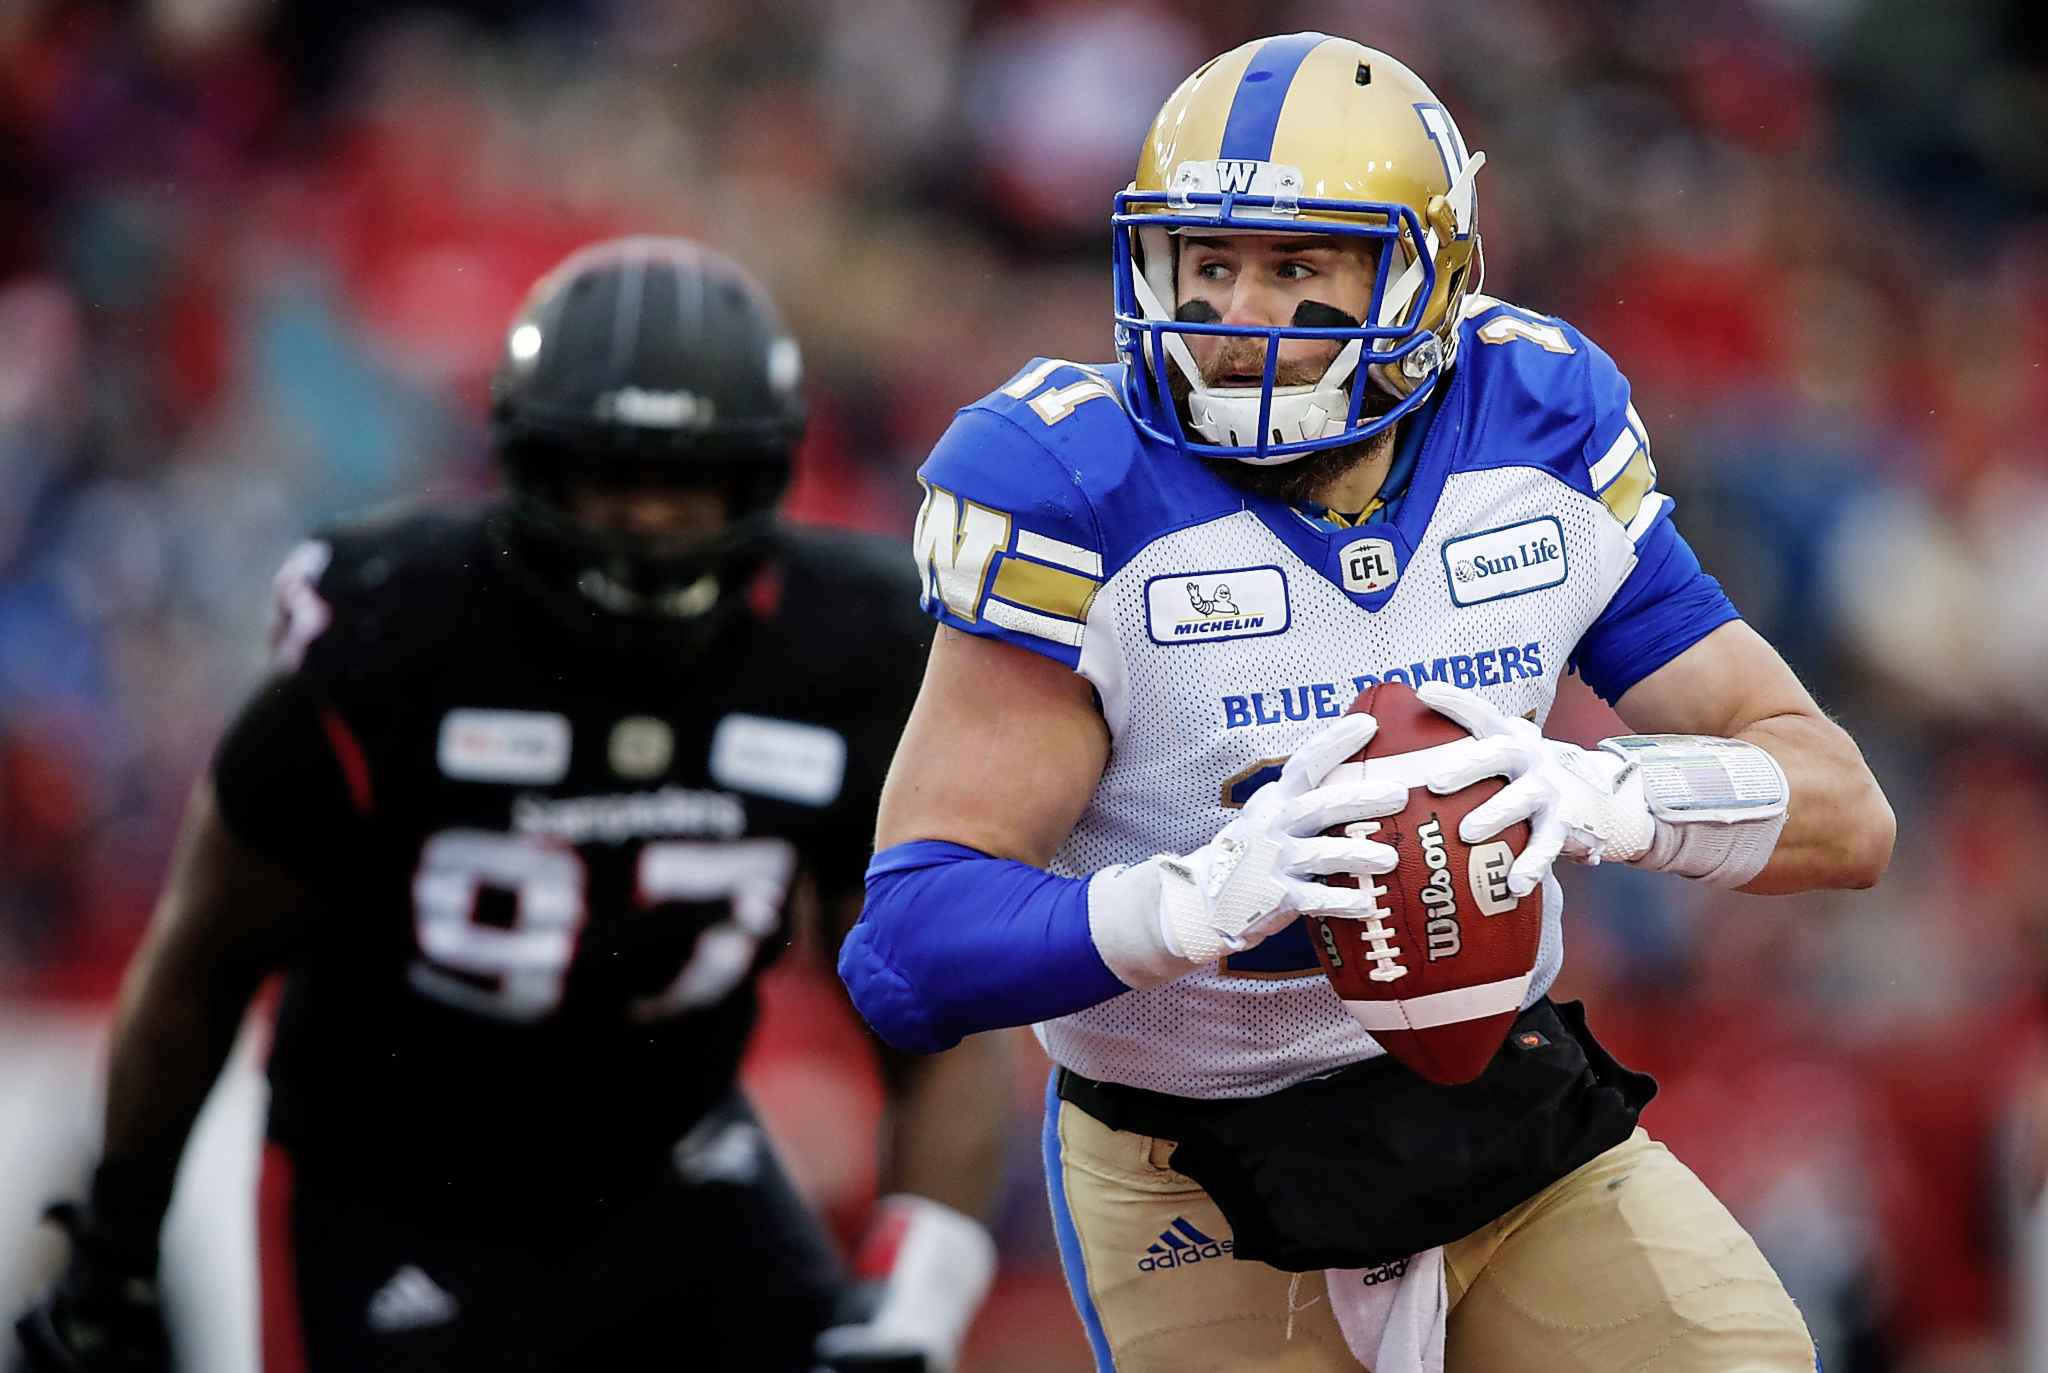 Bombers rookie quarterback Chris Streveler was a welcomed surprise.